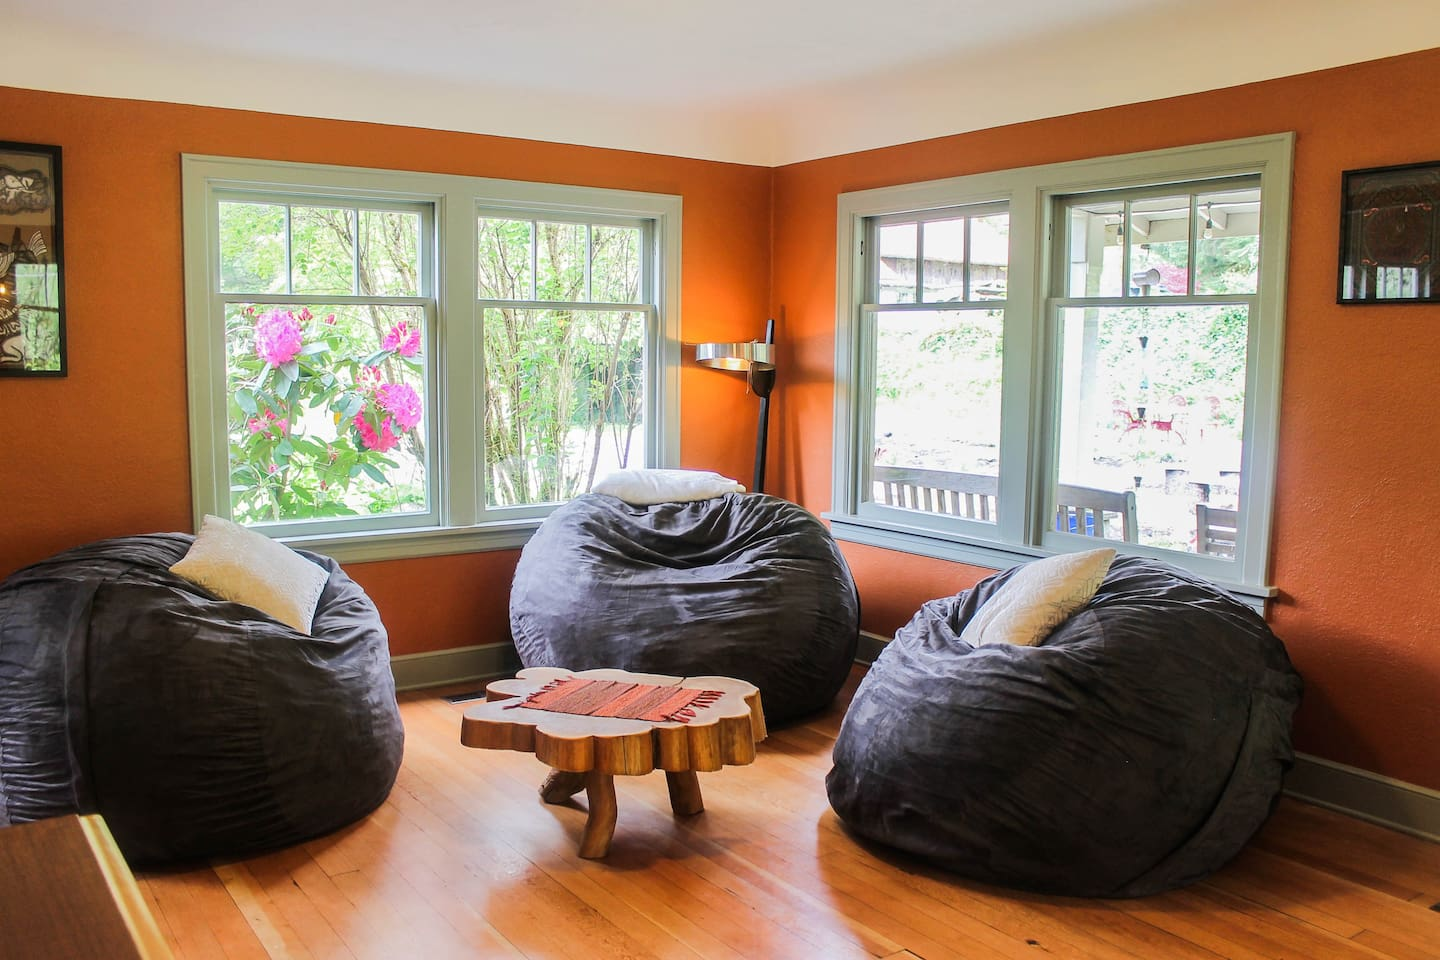 Bean bags offer the ultimate relaxation